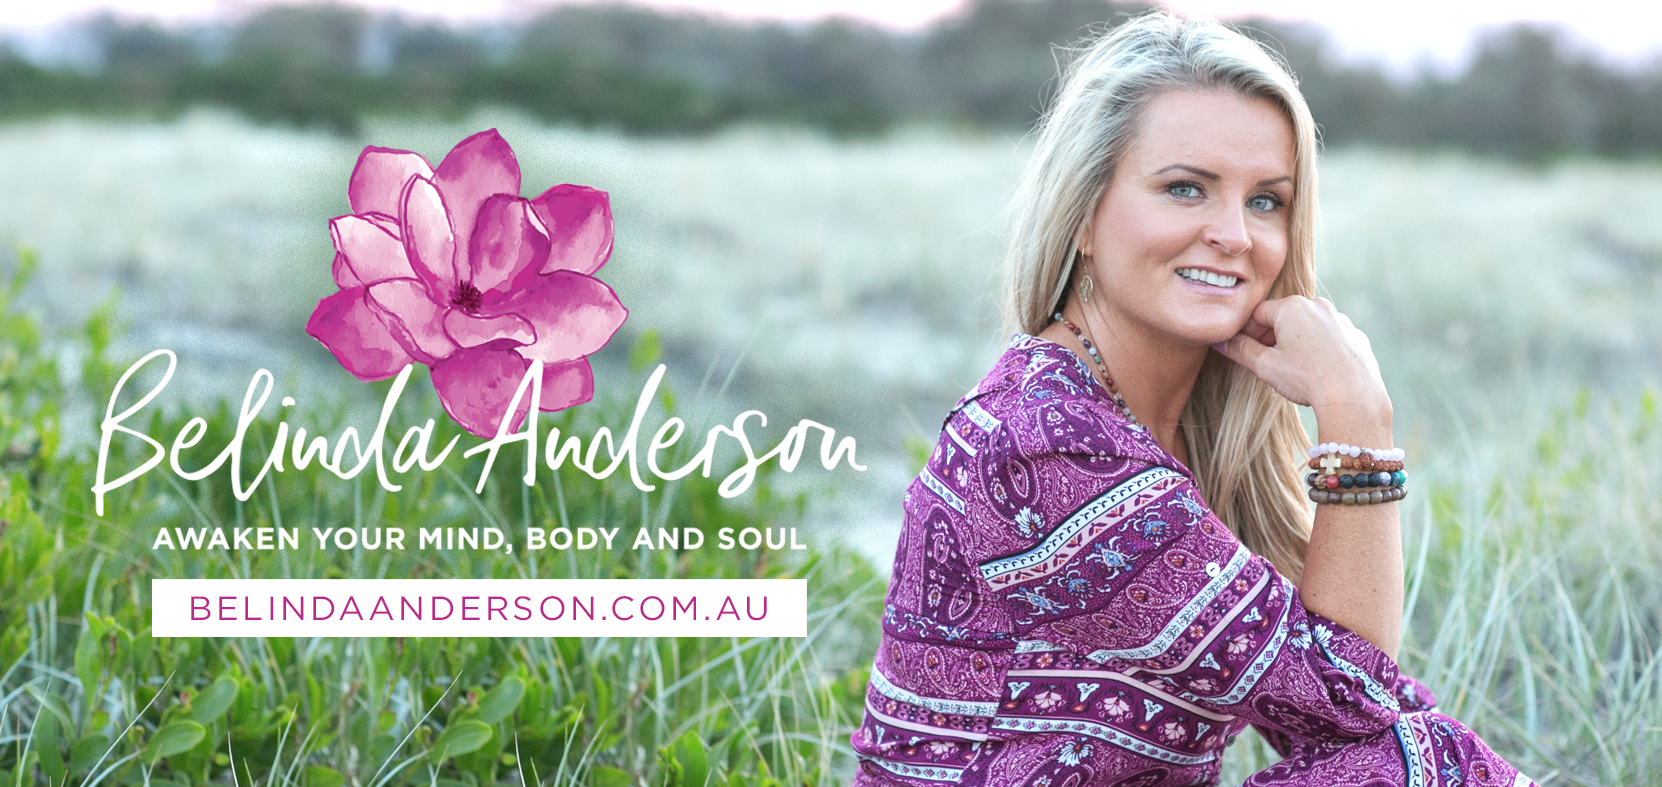 Life Coach Belinda Anderson Helps You Achieve Personal Growth